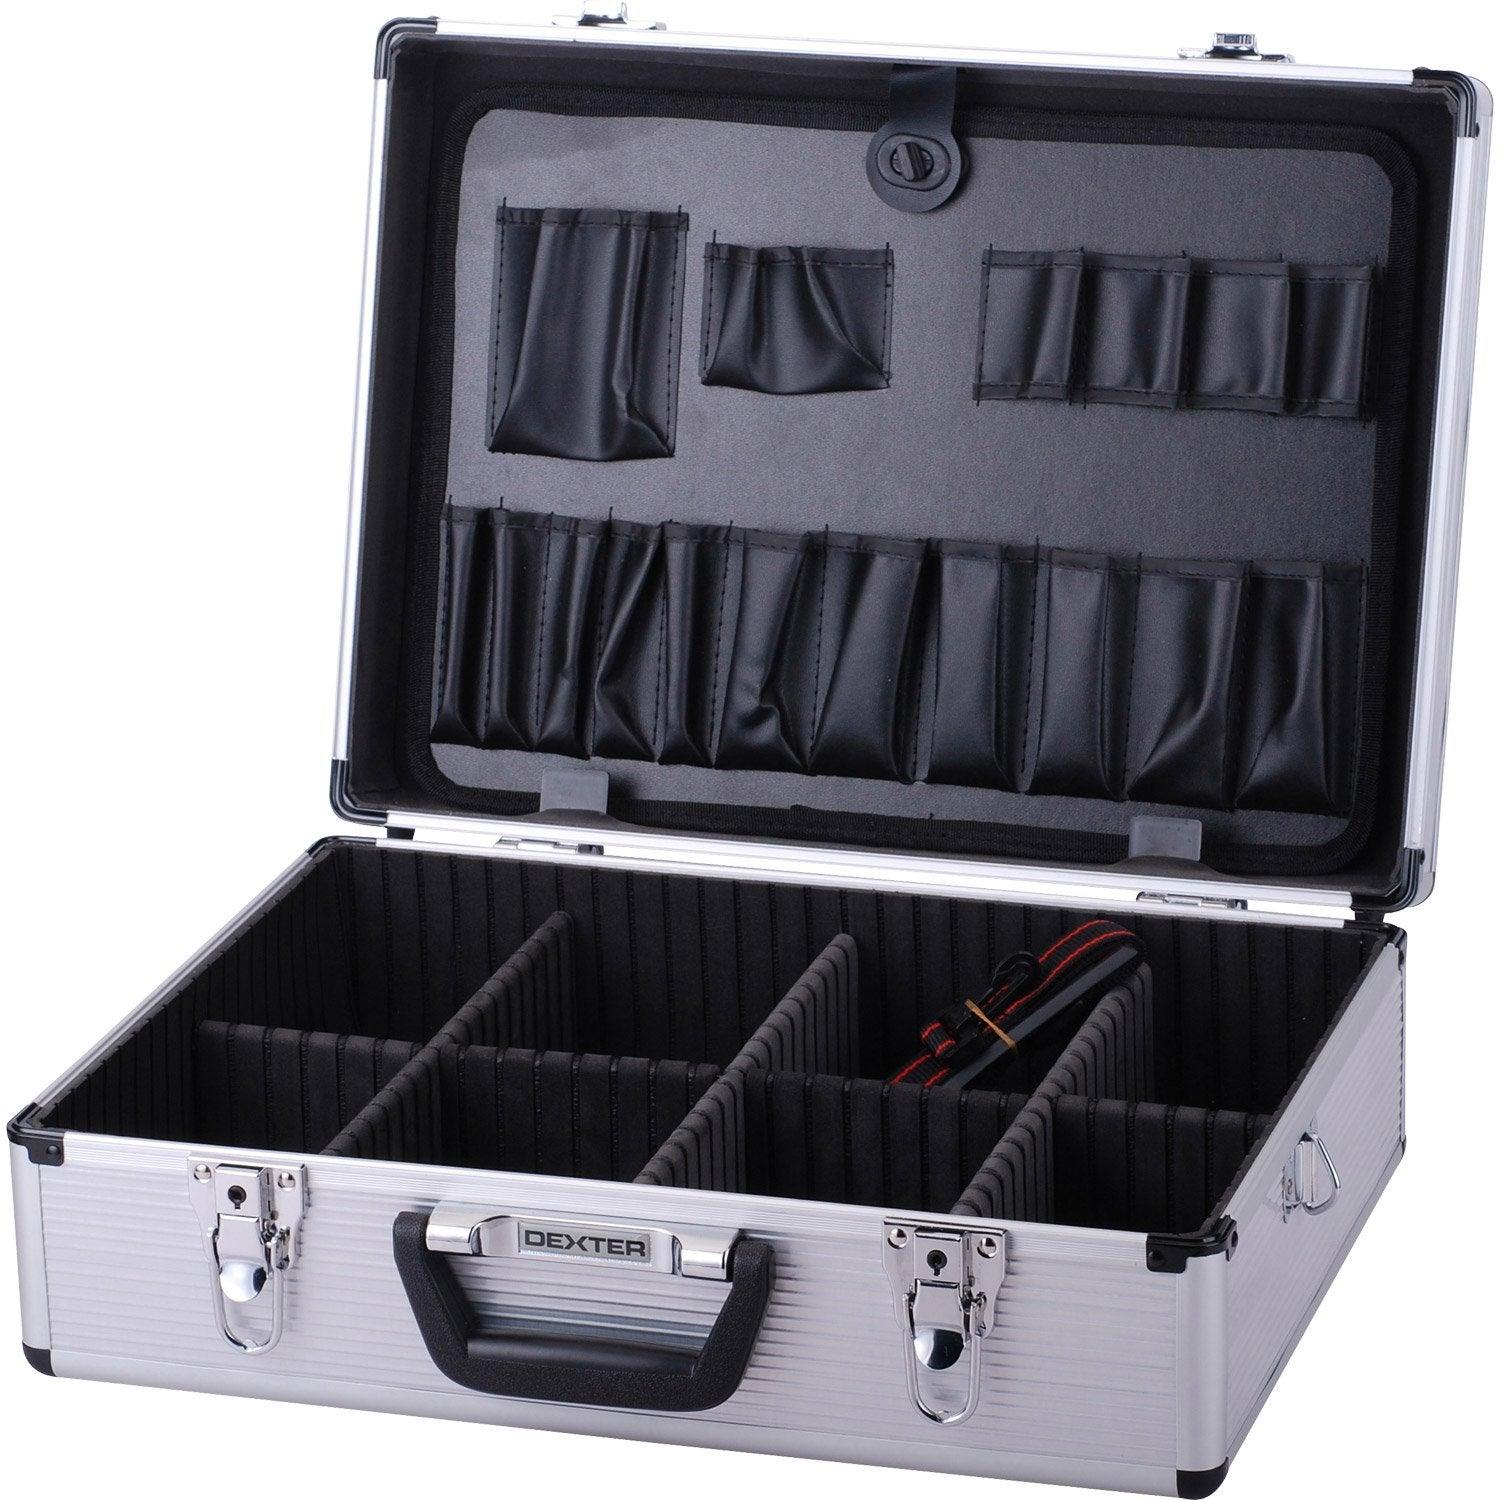 Valise outils dexter cm leroy merlin - Caisse a outils leroy merlin ...